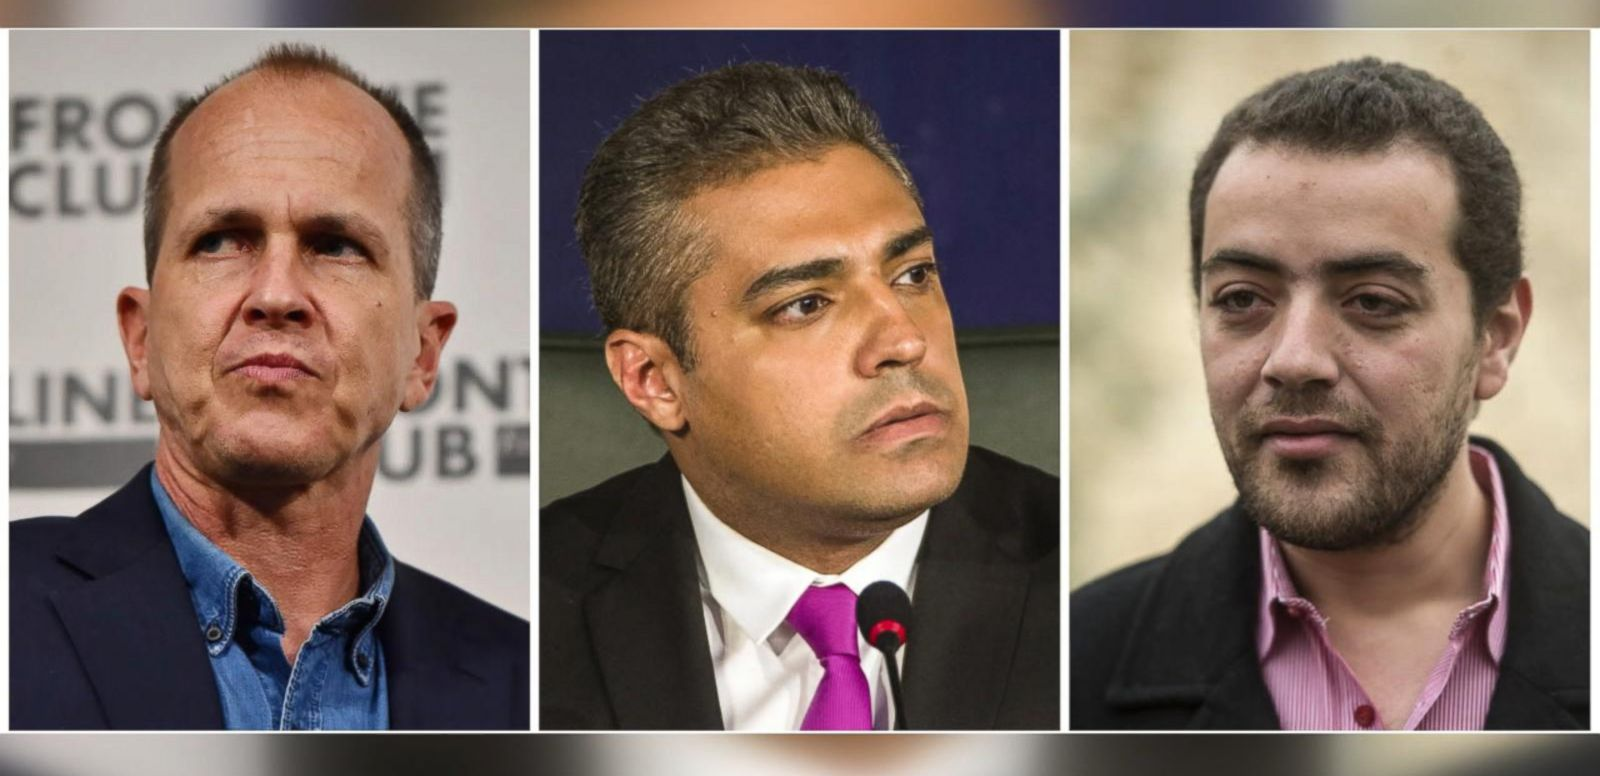 VIDEO: Al-Jazeera Reporters Get 3 Years in Prison for 'Spreading False News' in Egypt